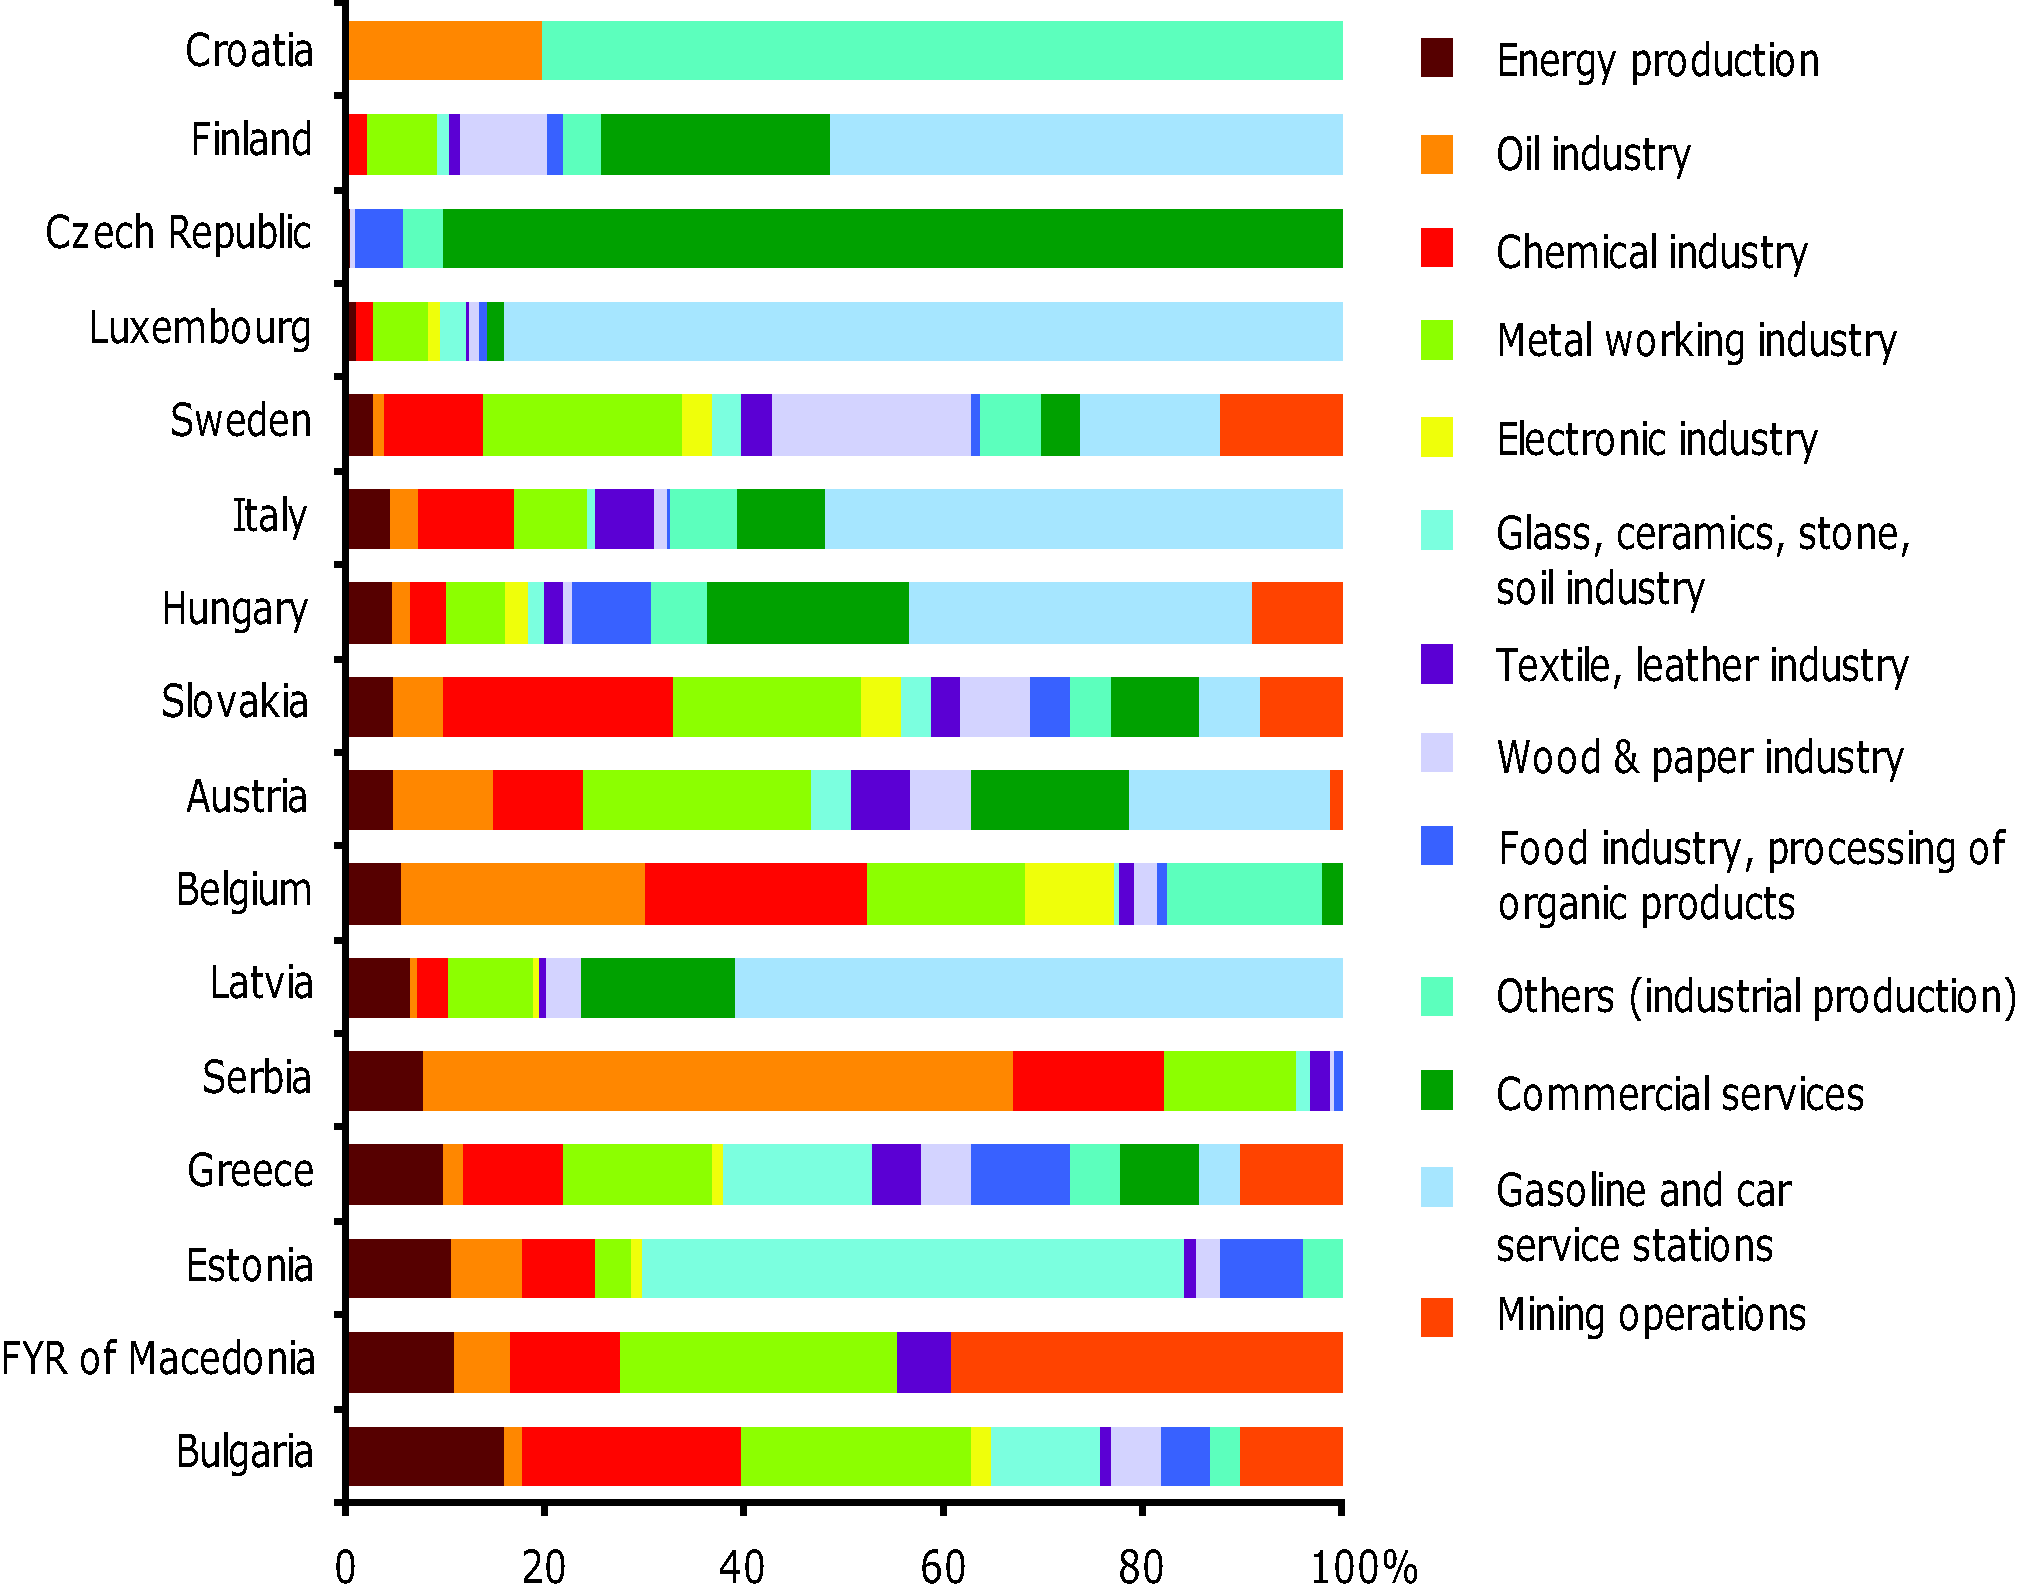 Detailed analysis of industrial and commercial activities causing soil contamination by country